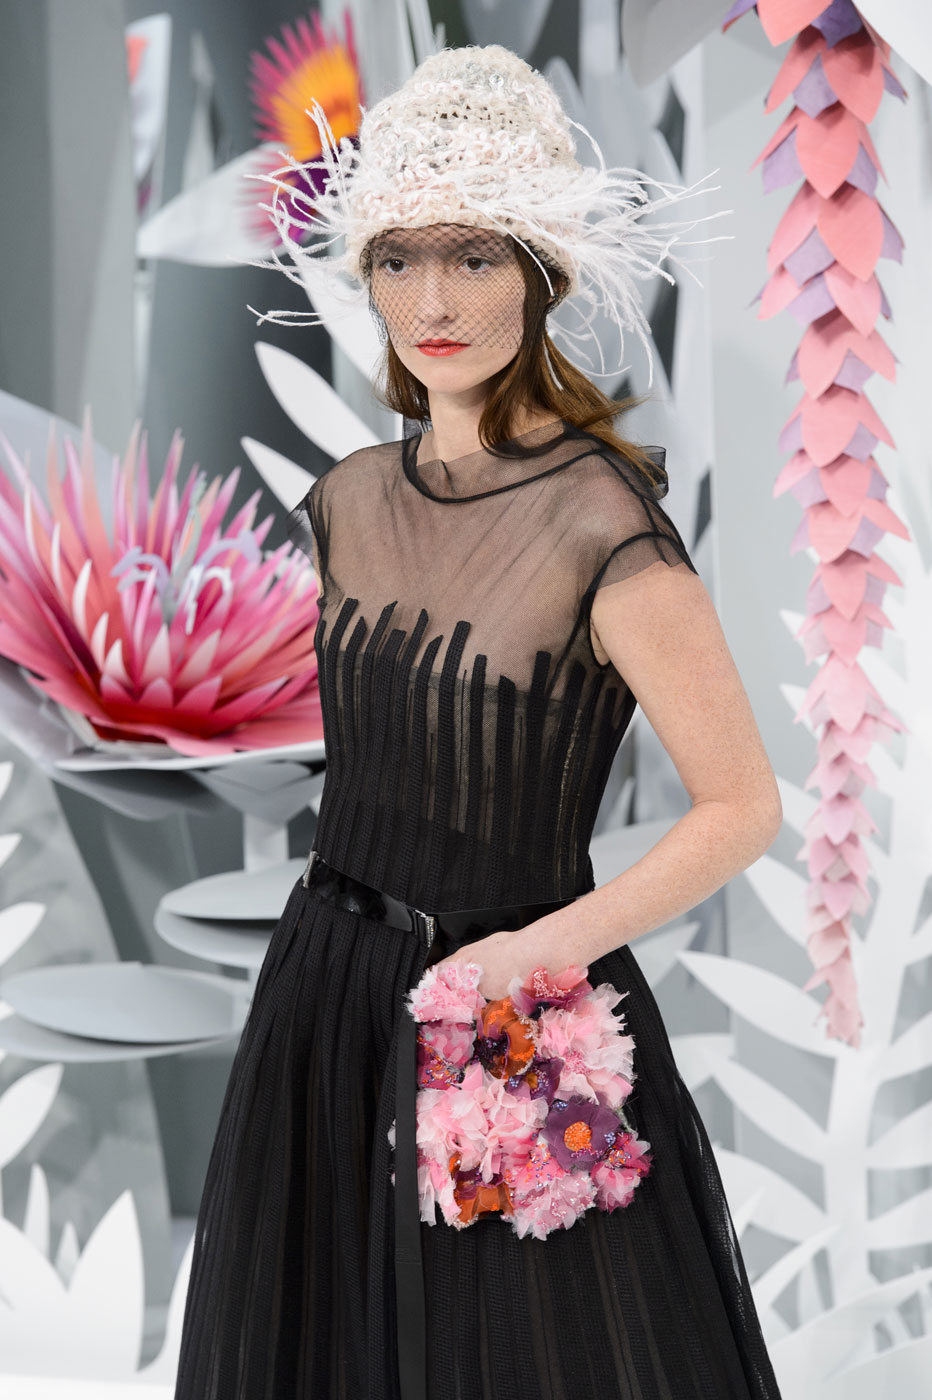 Chanel-fashion-runway-show-haute-couture-paris-spring-summer-2015-the-impression-083